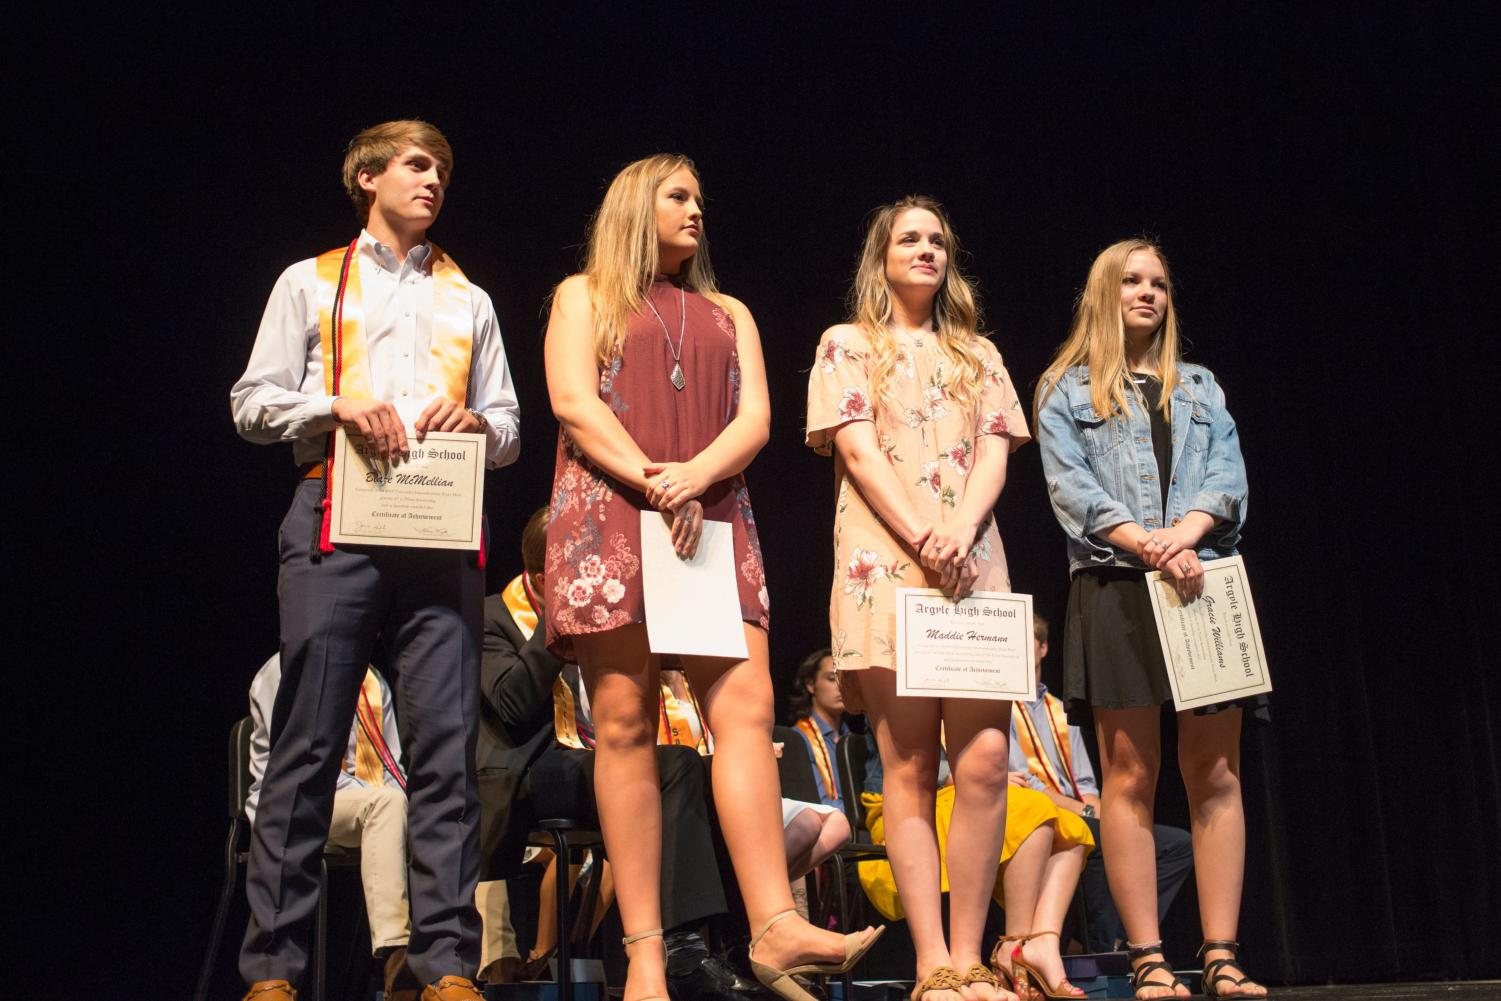 Students celebrate their 2017-18 school year accomplishments at the awards ceremony  Argyle High School in Argyle, Texas, on April, 14, 2013. (Jaclyn Harris  / The Talon News)